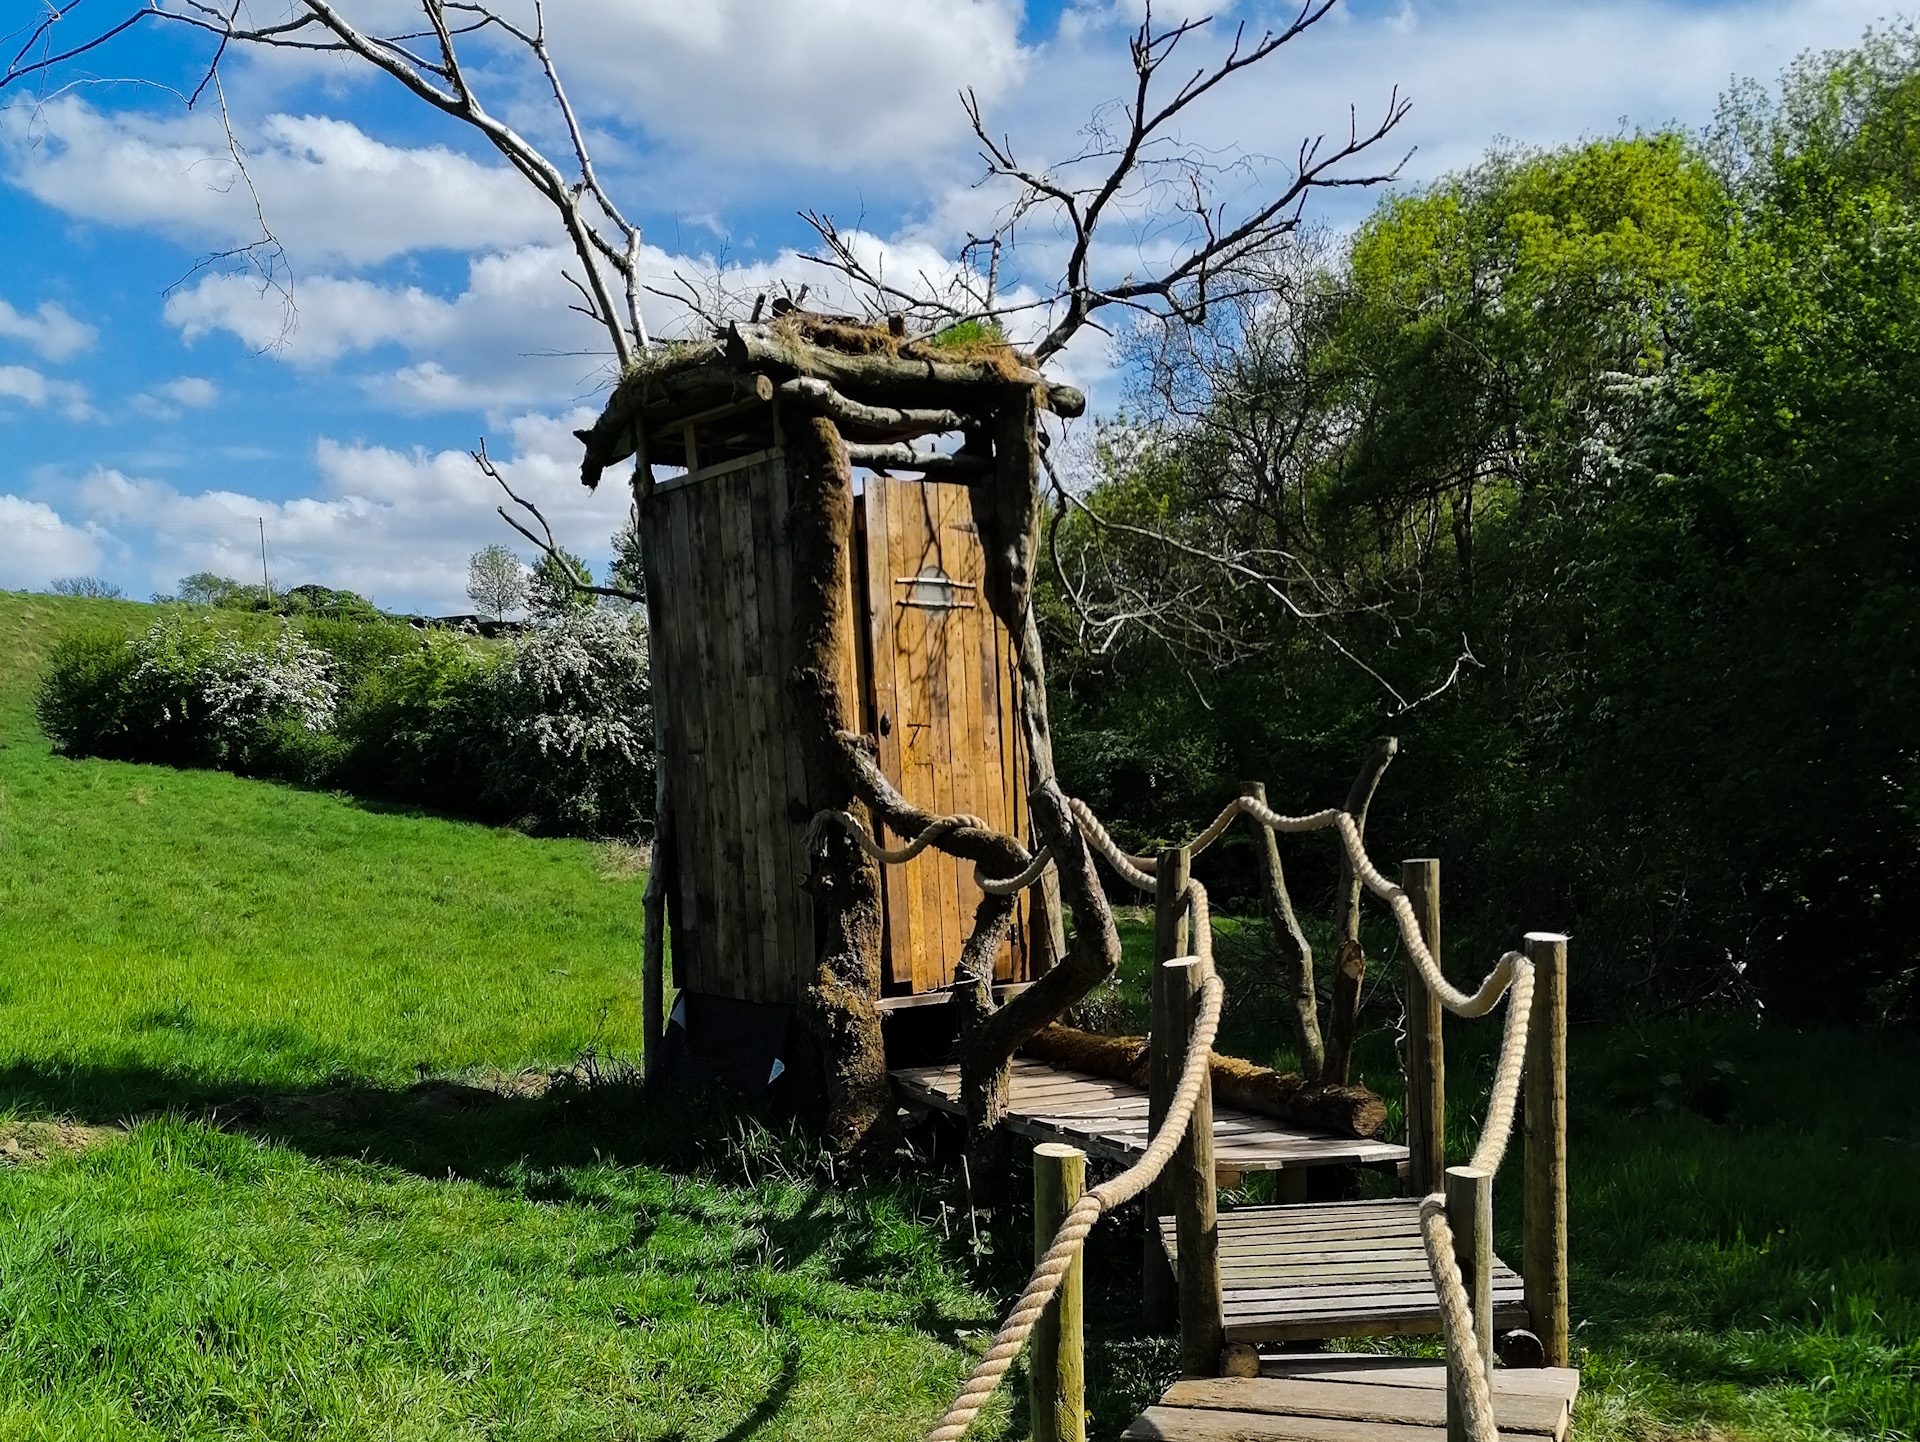 The compost toilet at the Wild Woods